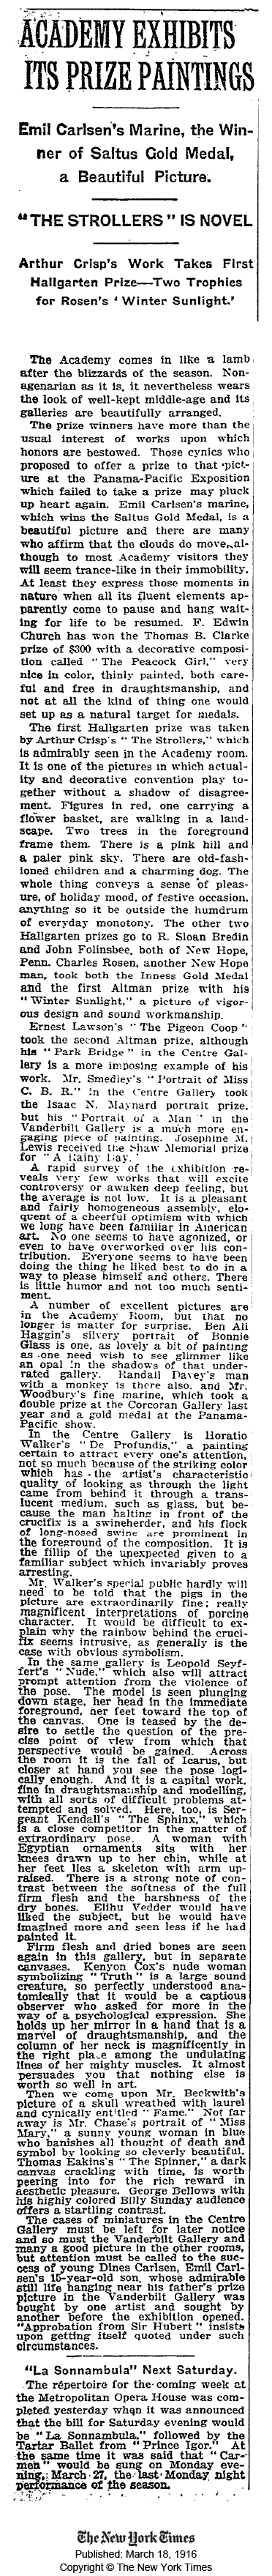 """New York Times, New York, NY, """"Academy Exhibits Its Prize Paintings: Emil Carlsen's Marine, the Winner of Saltus Gold Medal"""", March 18, 1916."""